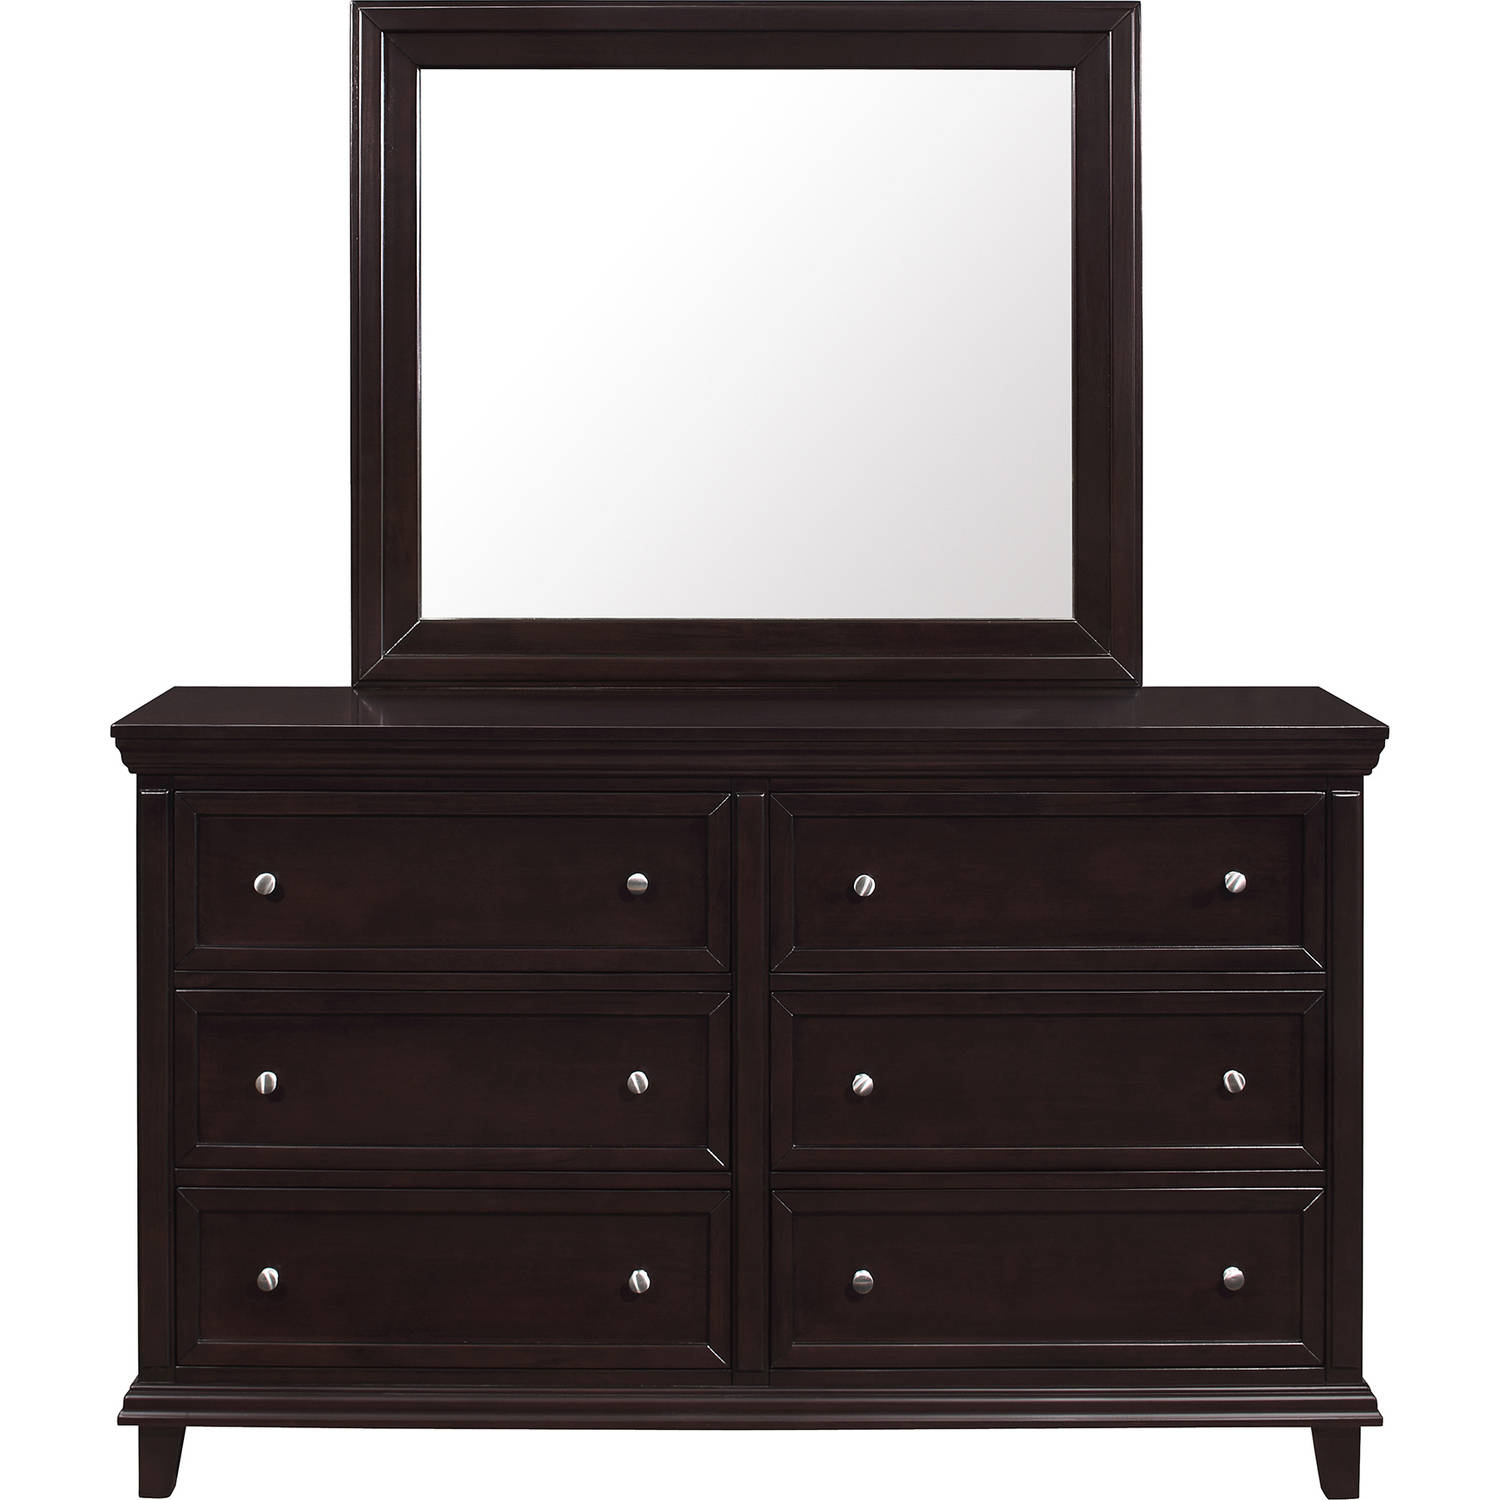 """Lifestyle Solutions Davina Mirror 37""""x40"""" (Mirror Only, Dresser Sold Separately)"""